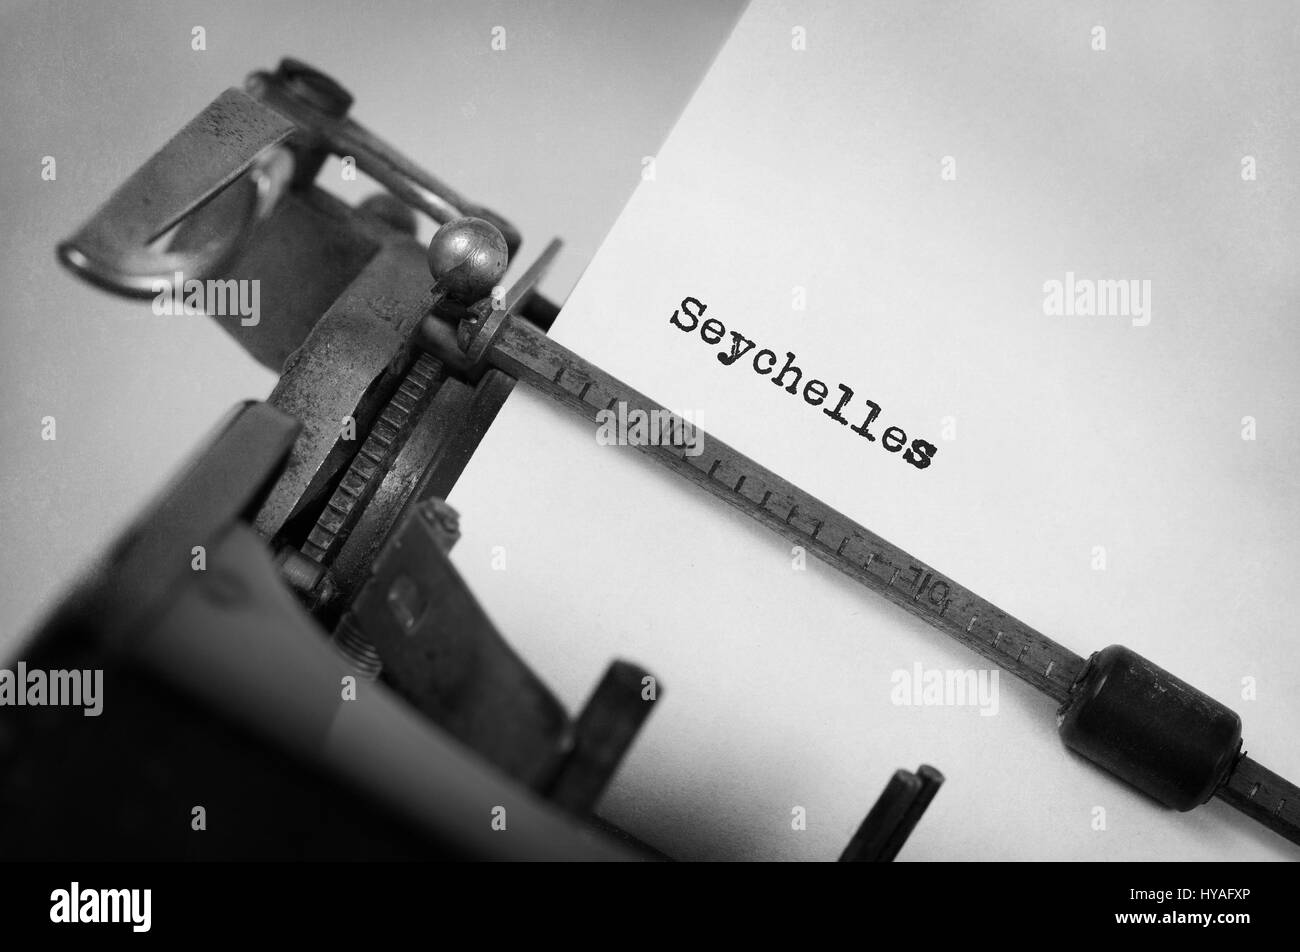 Inscription made by vintage typewriter, country, Seychelles - Stock Image